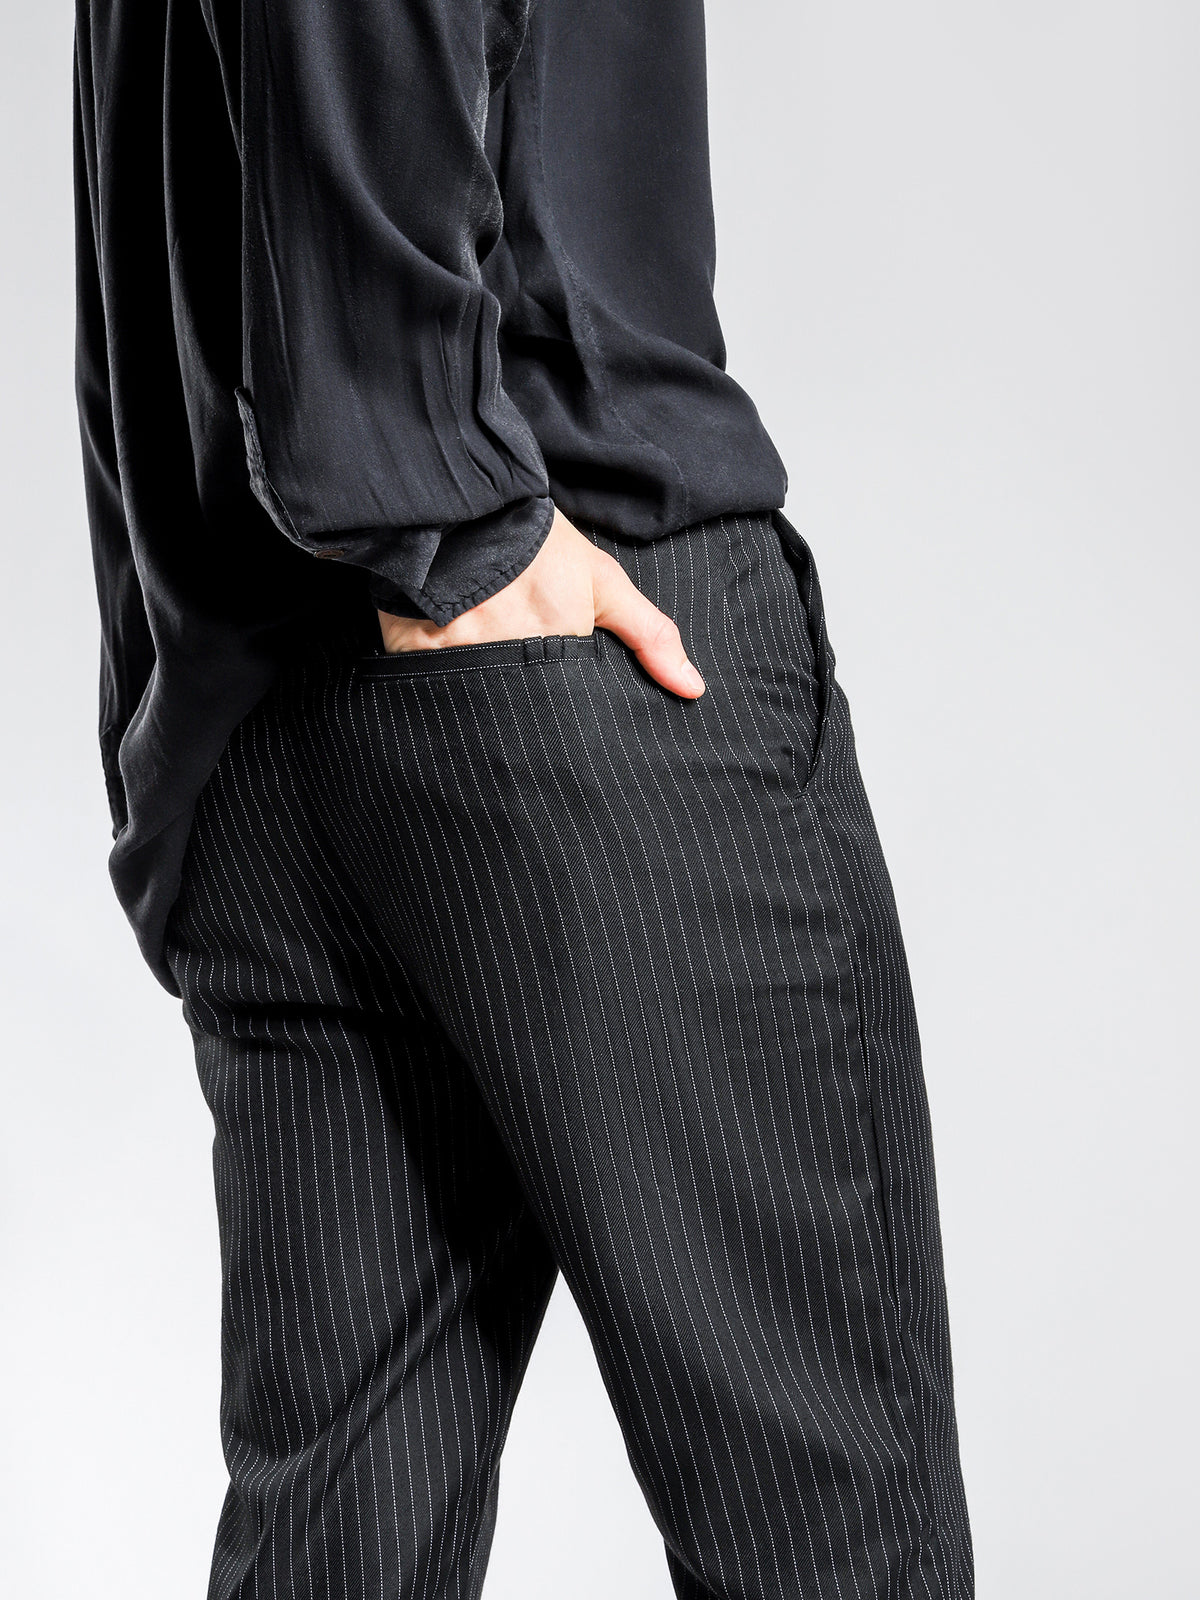 Vicious Pants in Black & White Stripe